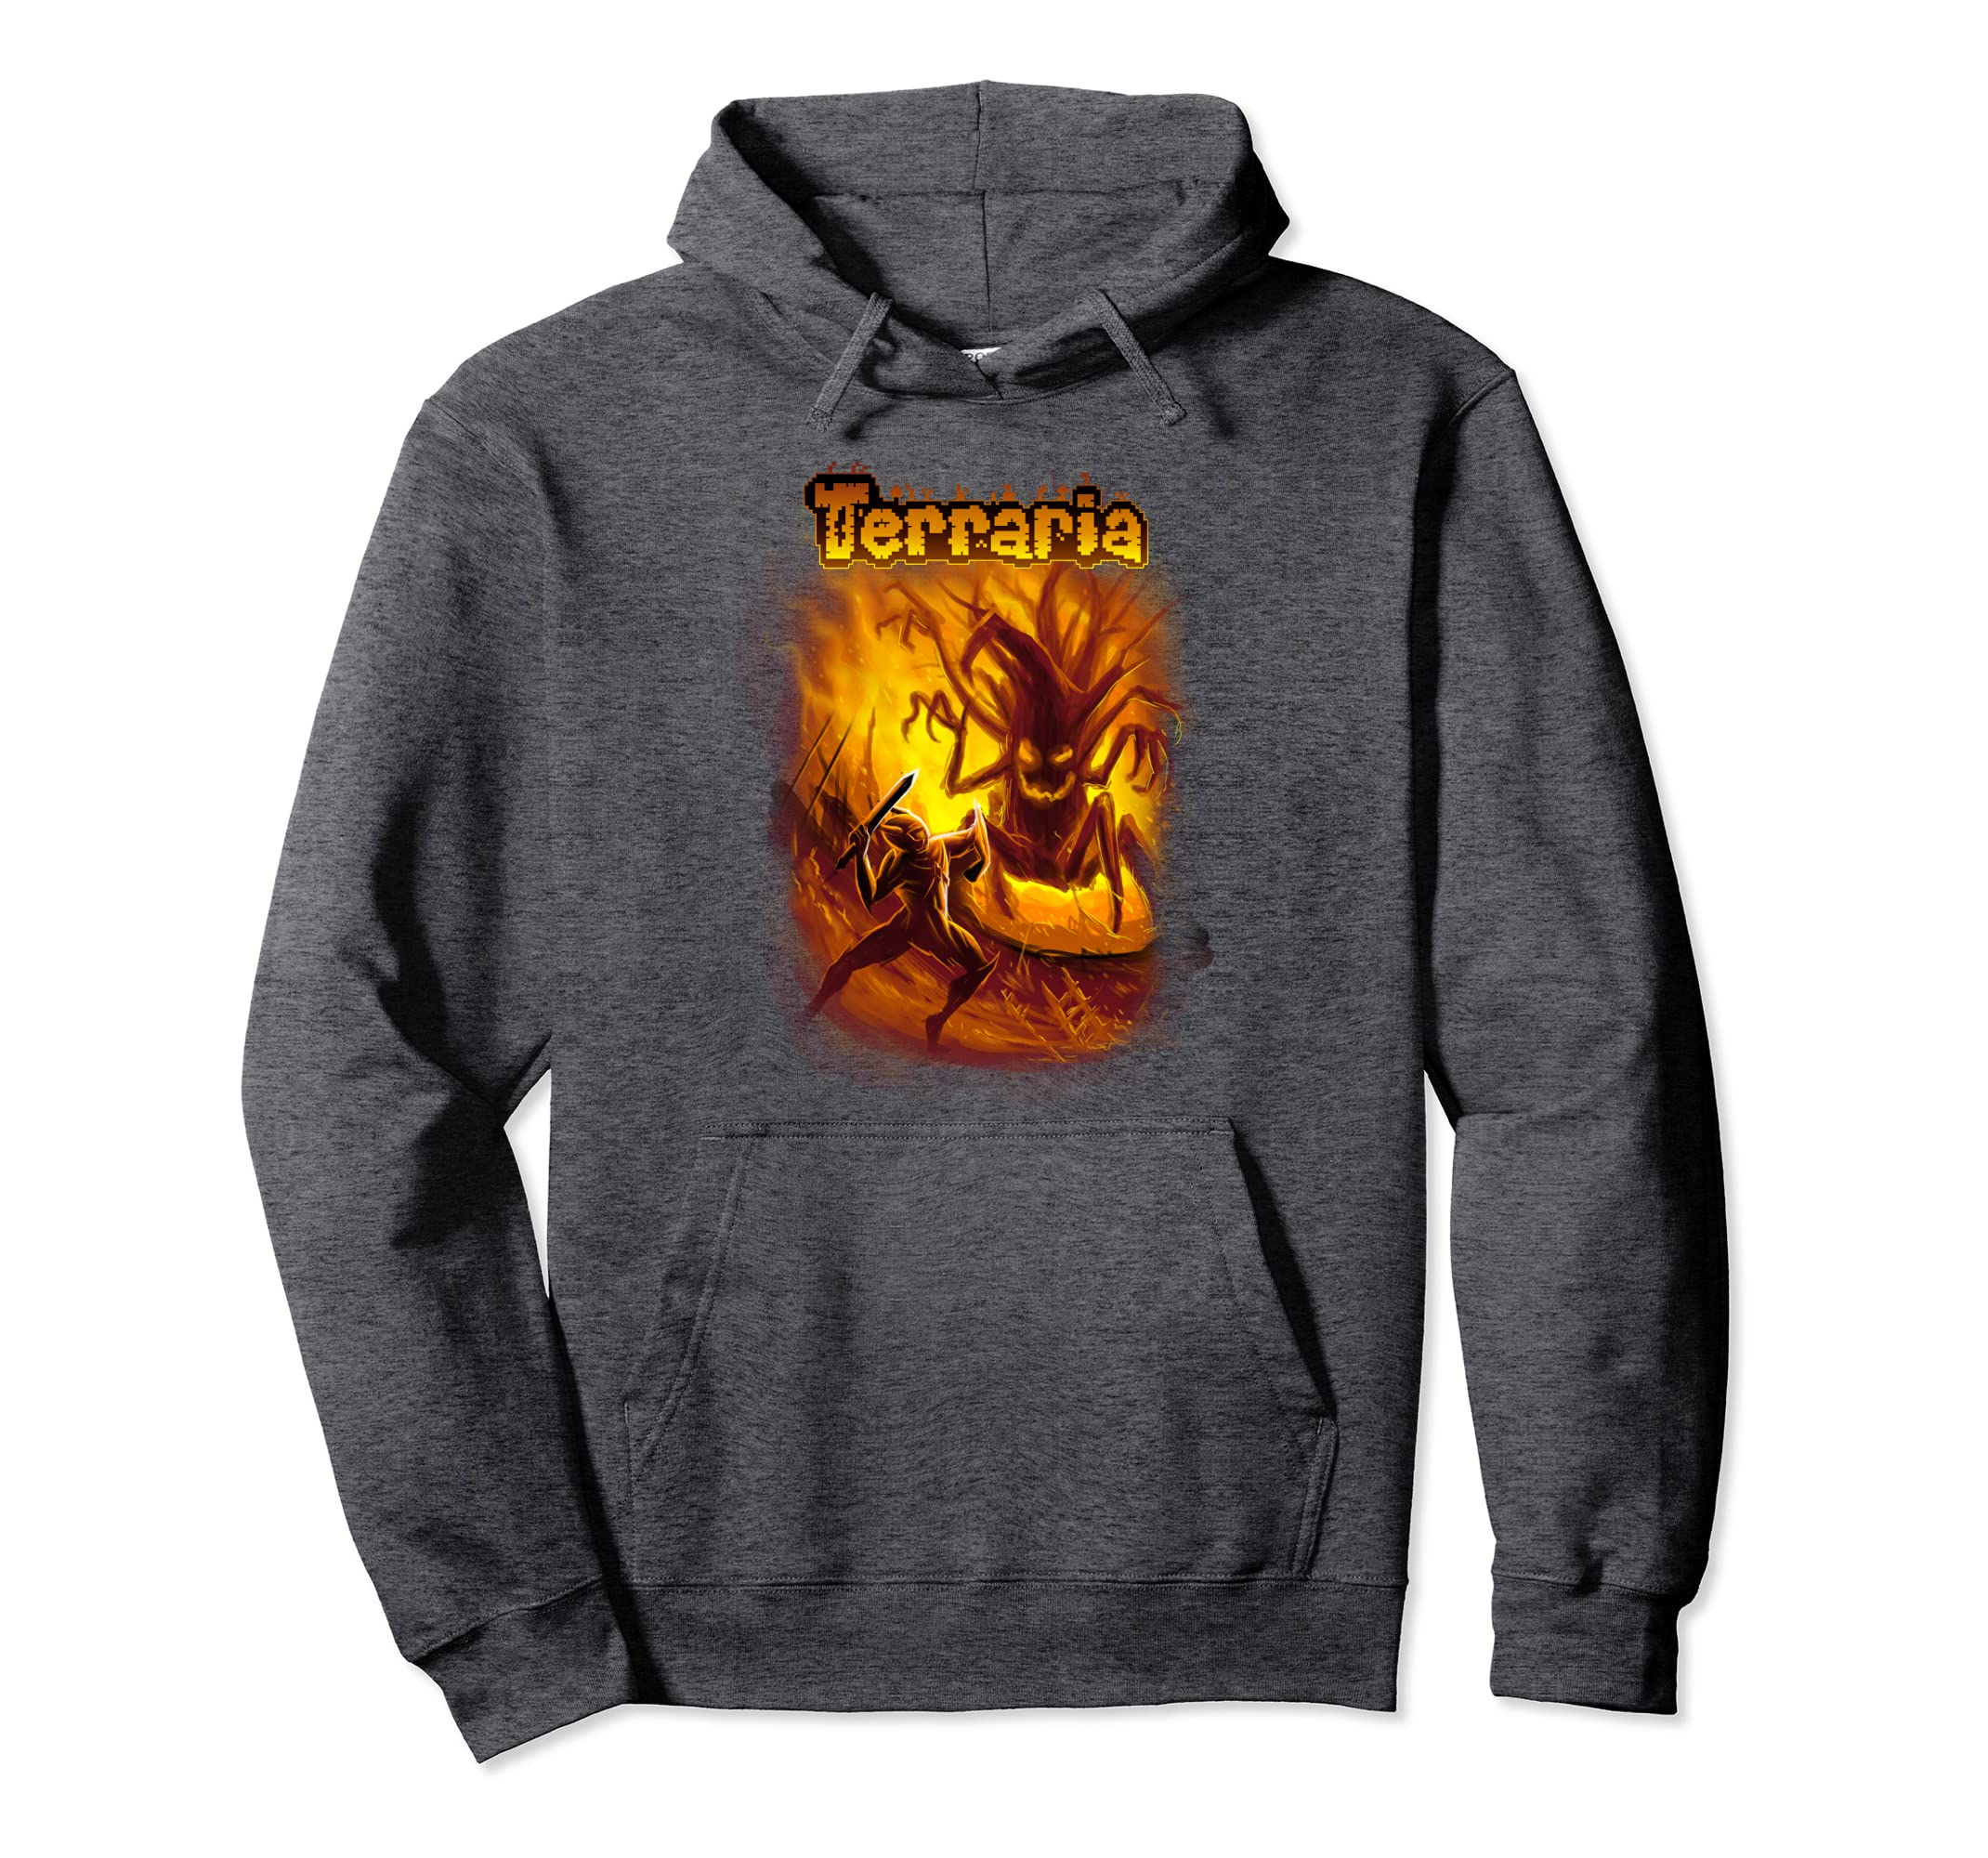 Amazon com: Terraria Hoodie: Mourning Wood: Clothing